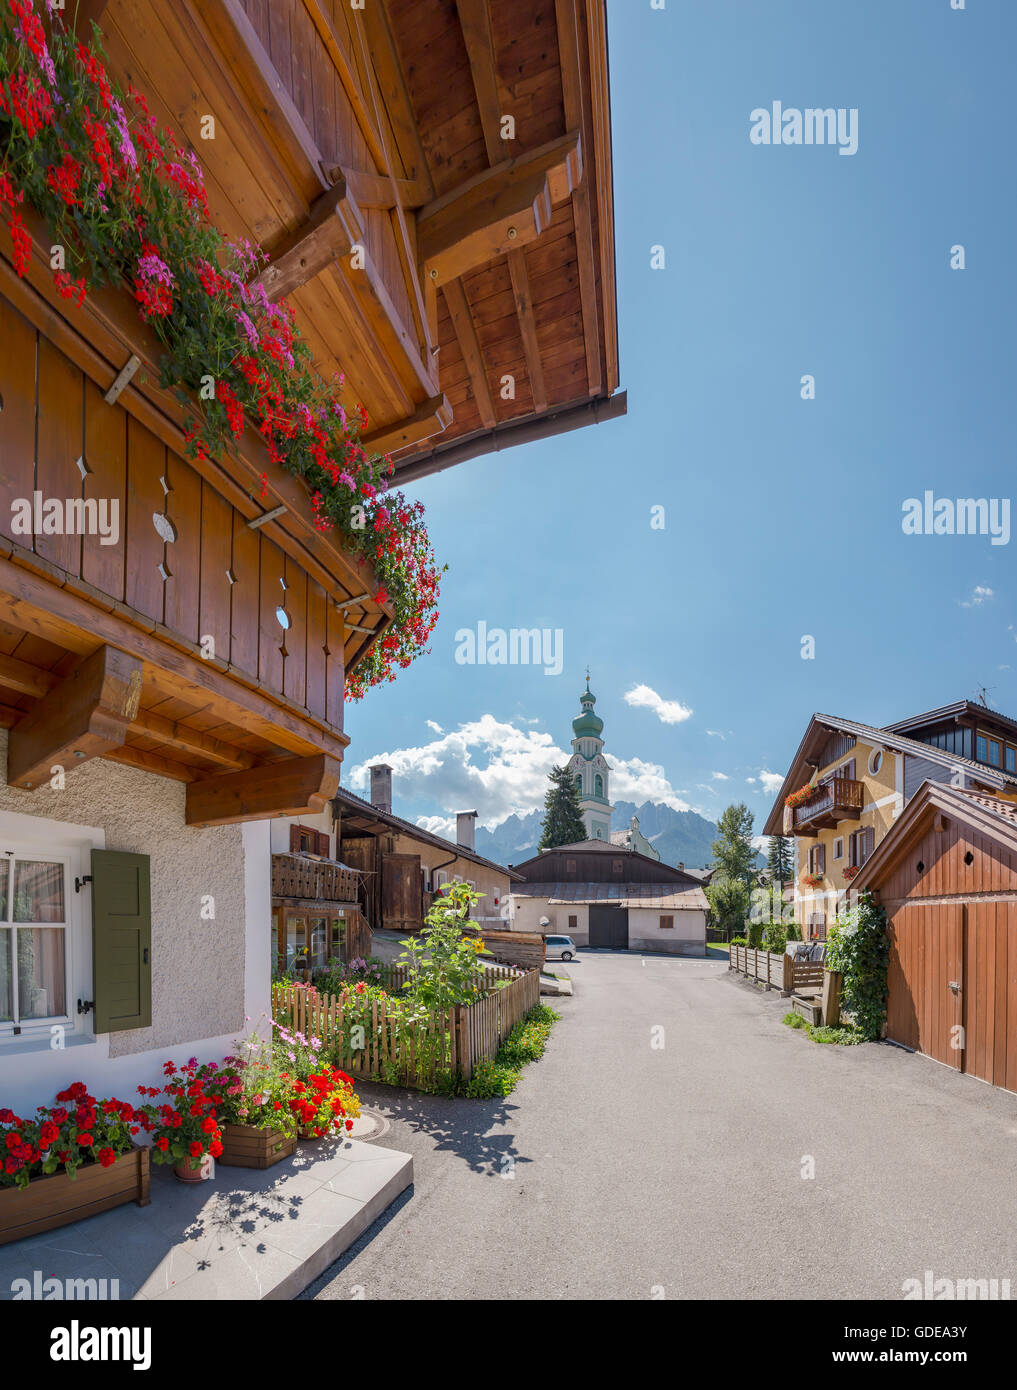 Toblach,Dobbiaco,Italia,Chalets with balconies full with flowers - Stock Image